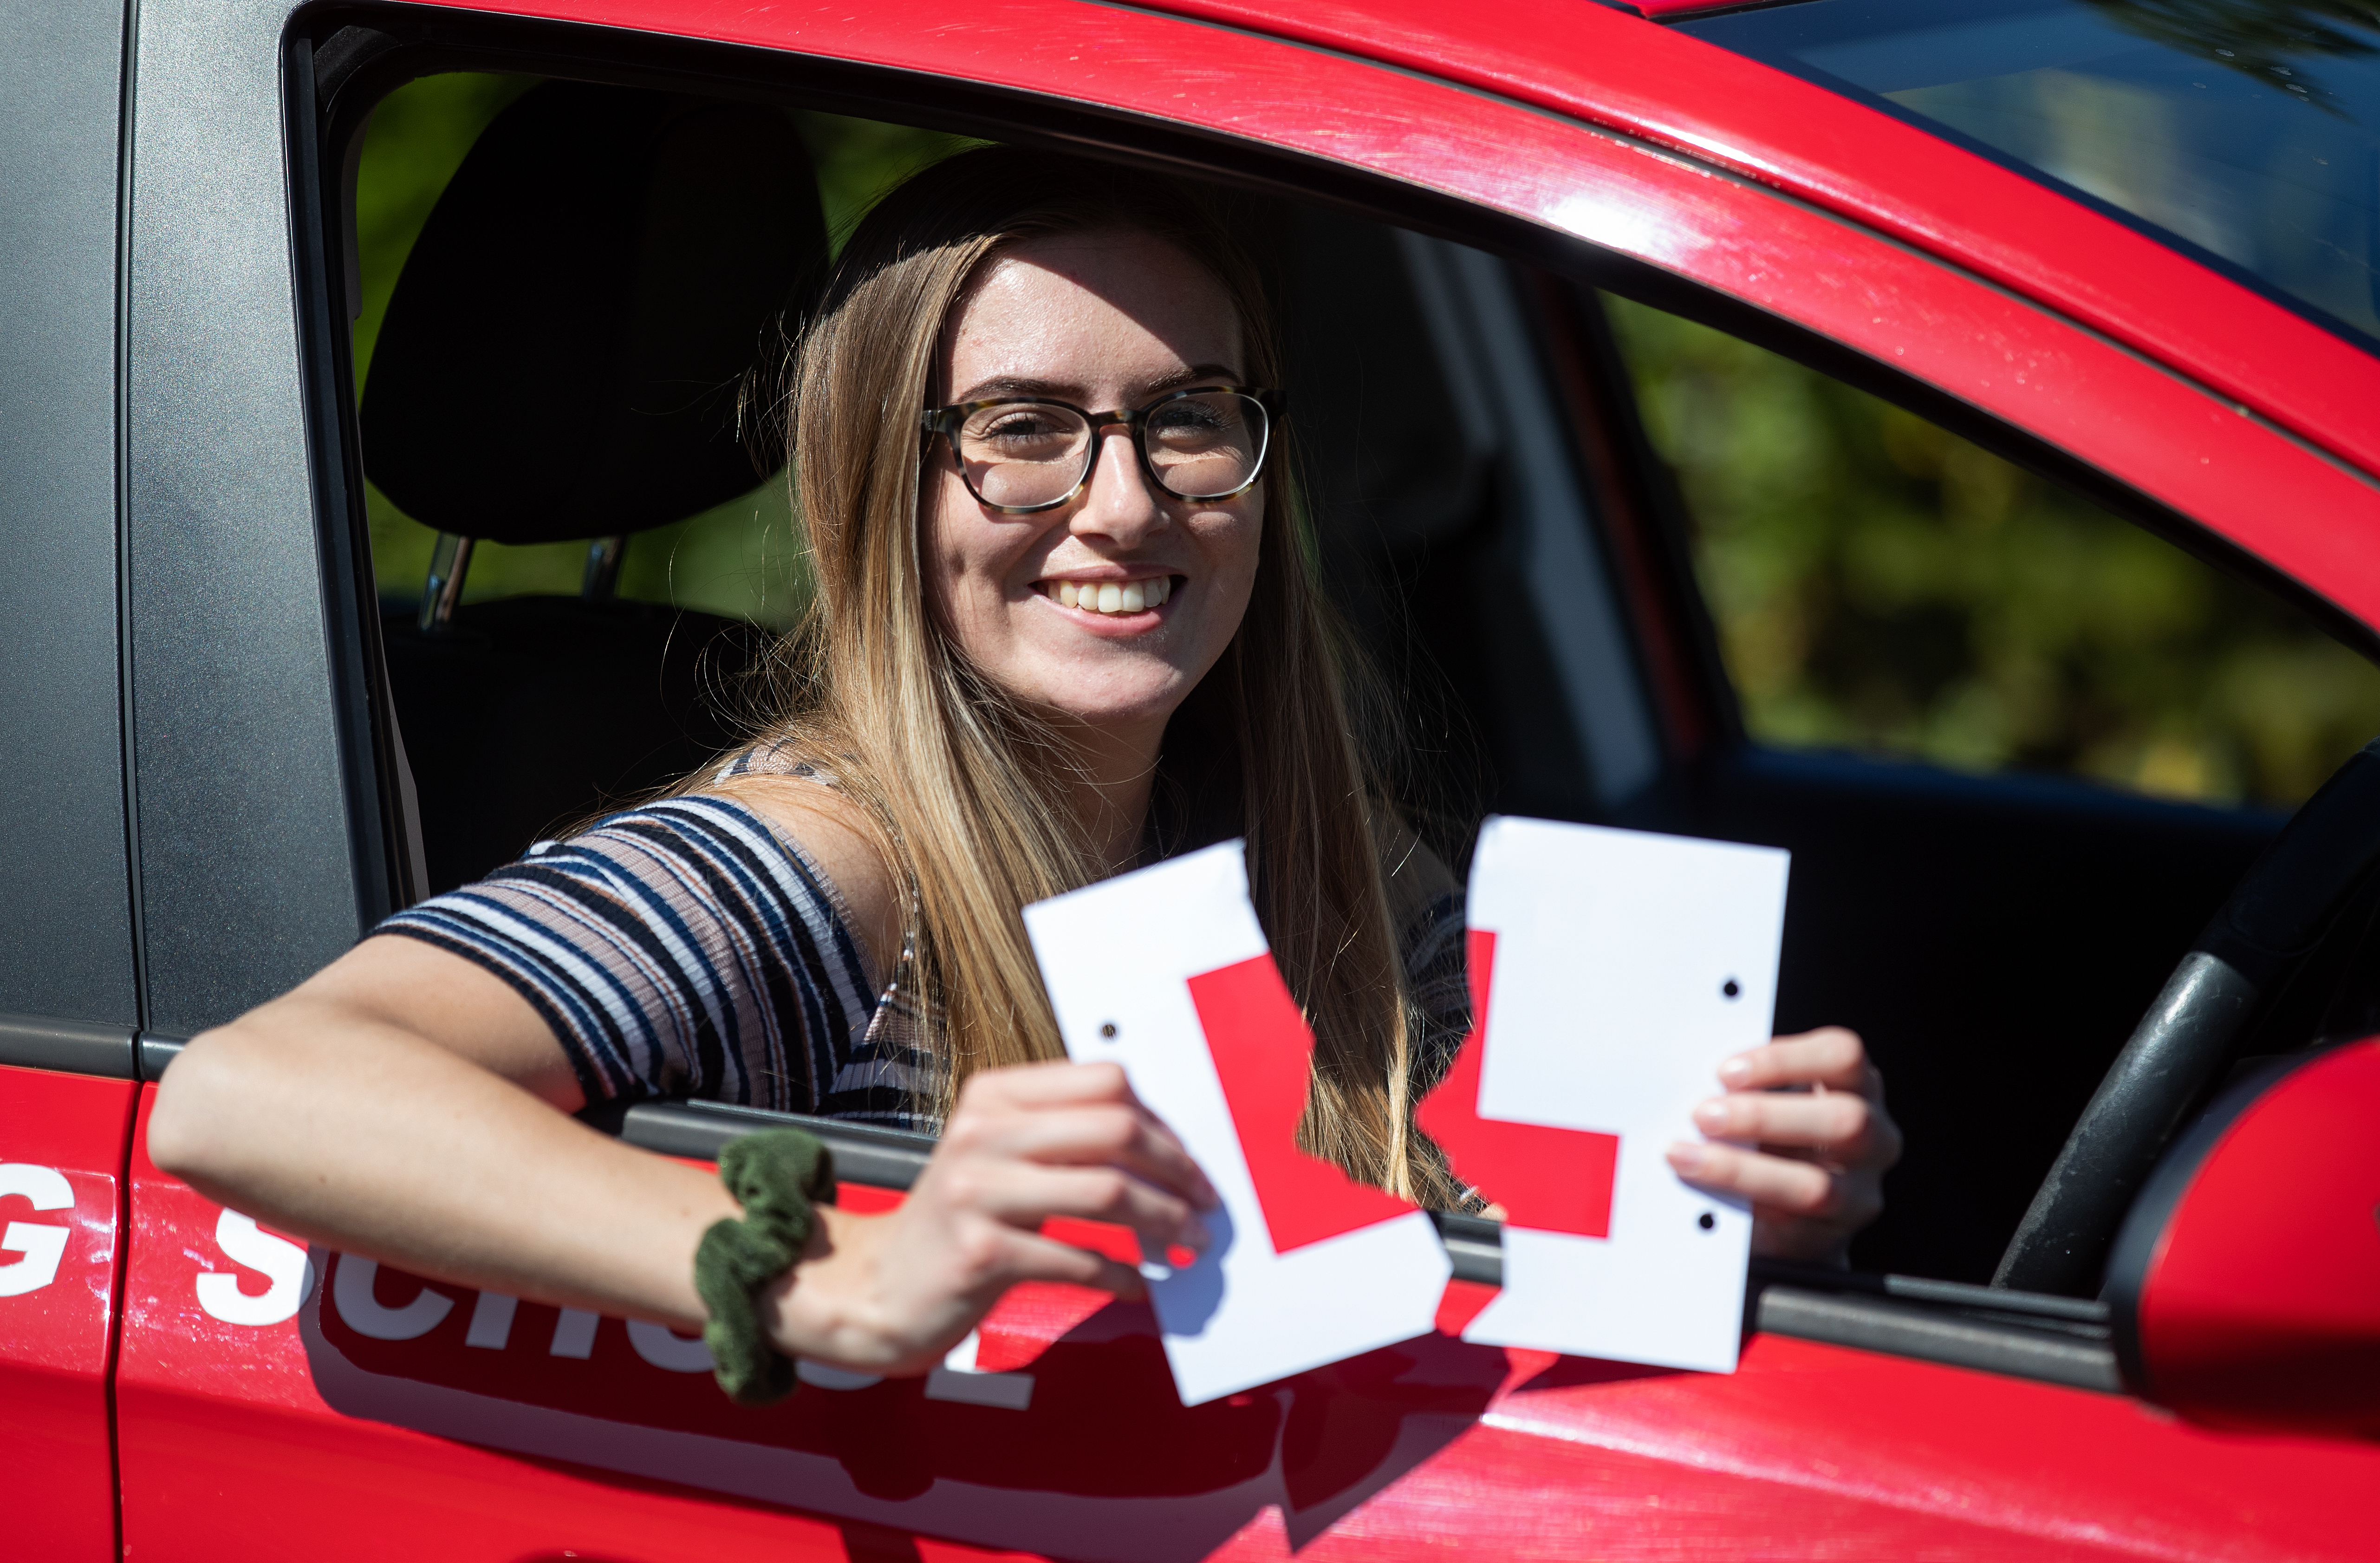 <p>Jade Bone, 24, celebrates passing her driving test at a test centre in Southampton, Hampshire, where examinations have resumed under the latest easing of lockdown restrictions. Driving tests have been suspended throughout the UK since early January but restart in England and Wales today. Picture date: Thursday April 22, 2021.</p>